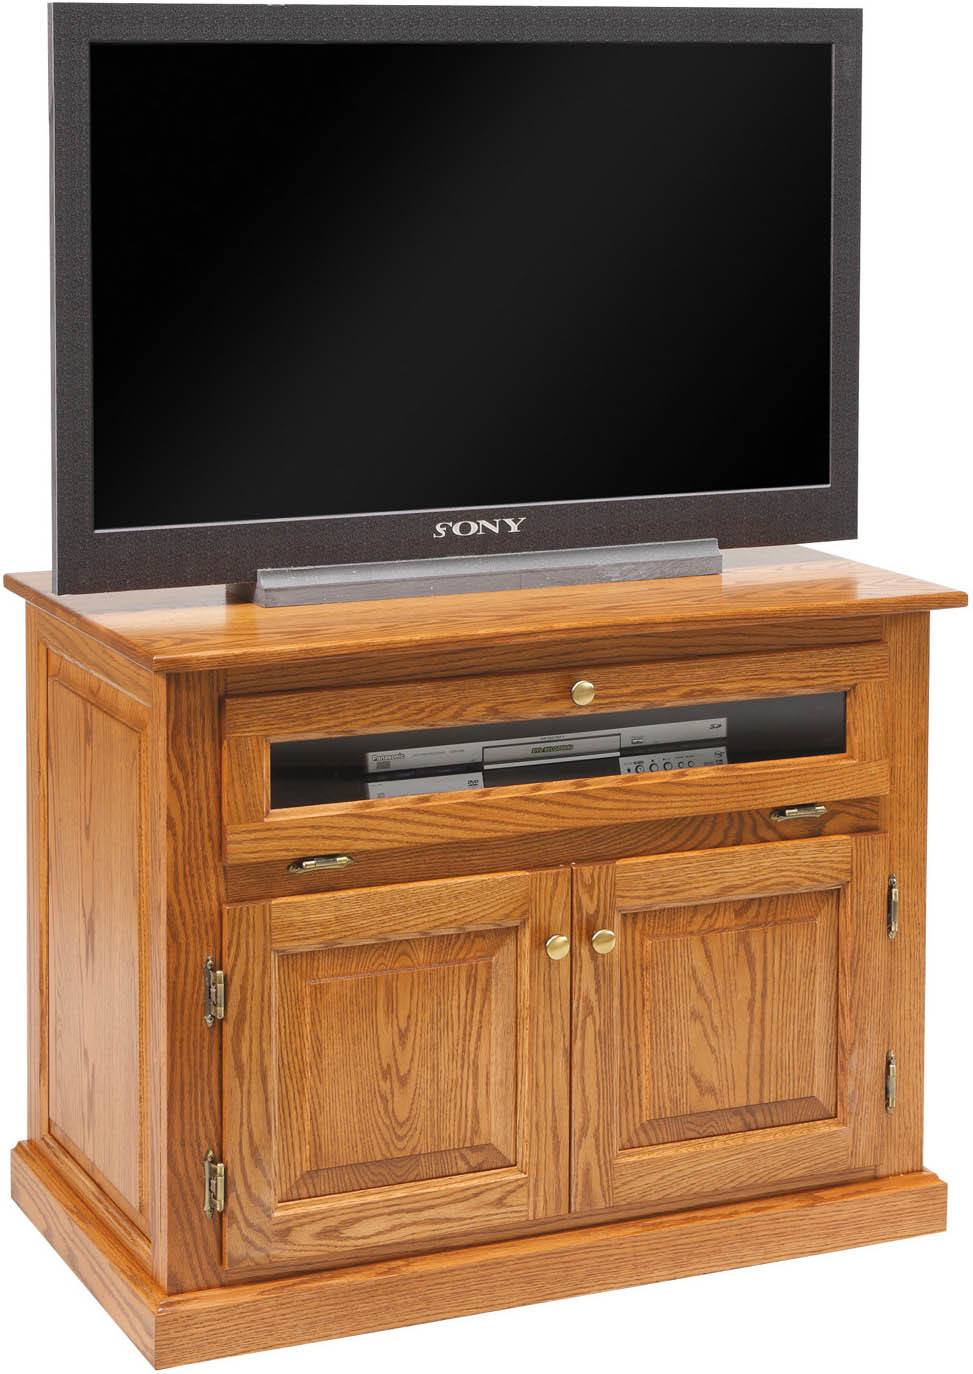 Traditional T.V. Stand-RP with Doors and Drawers